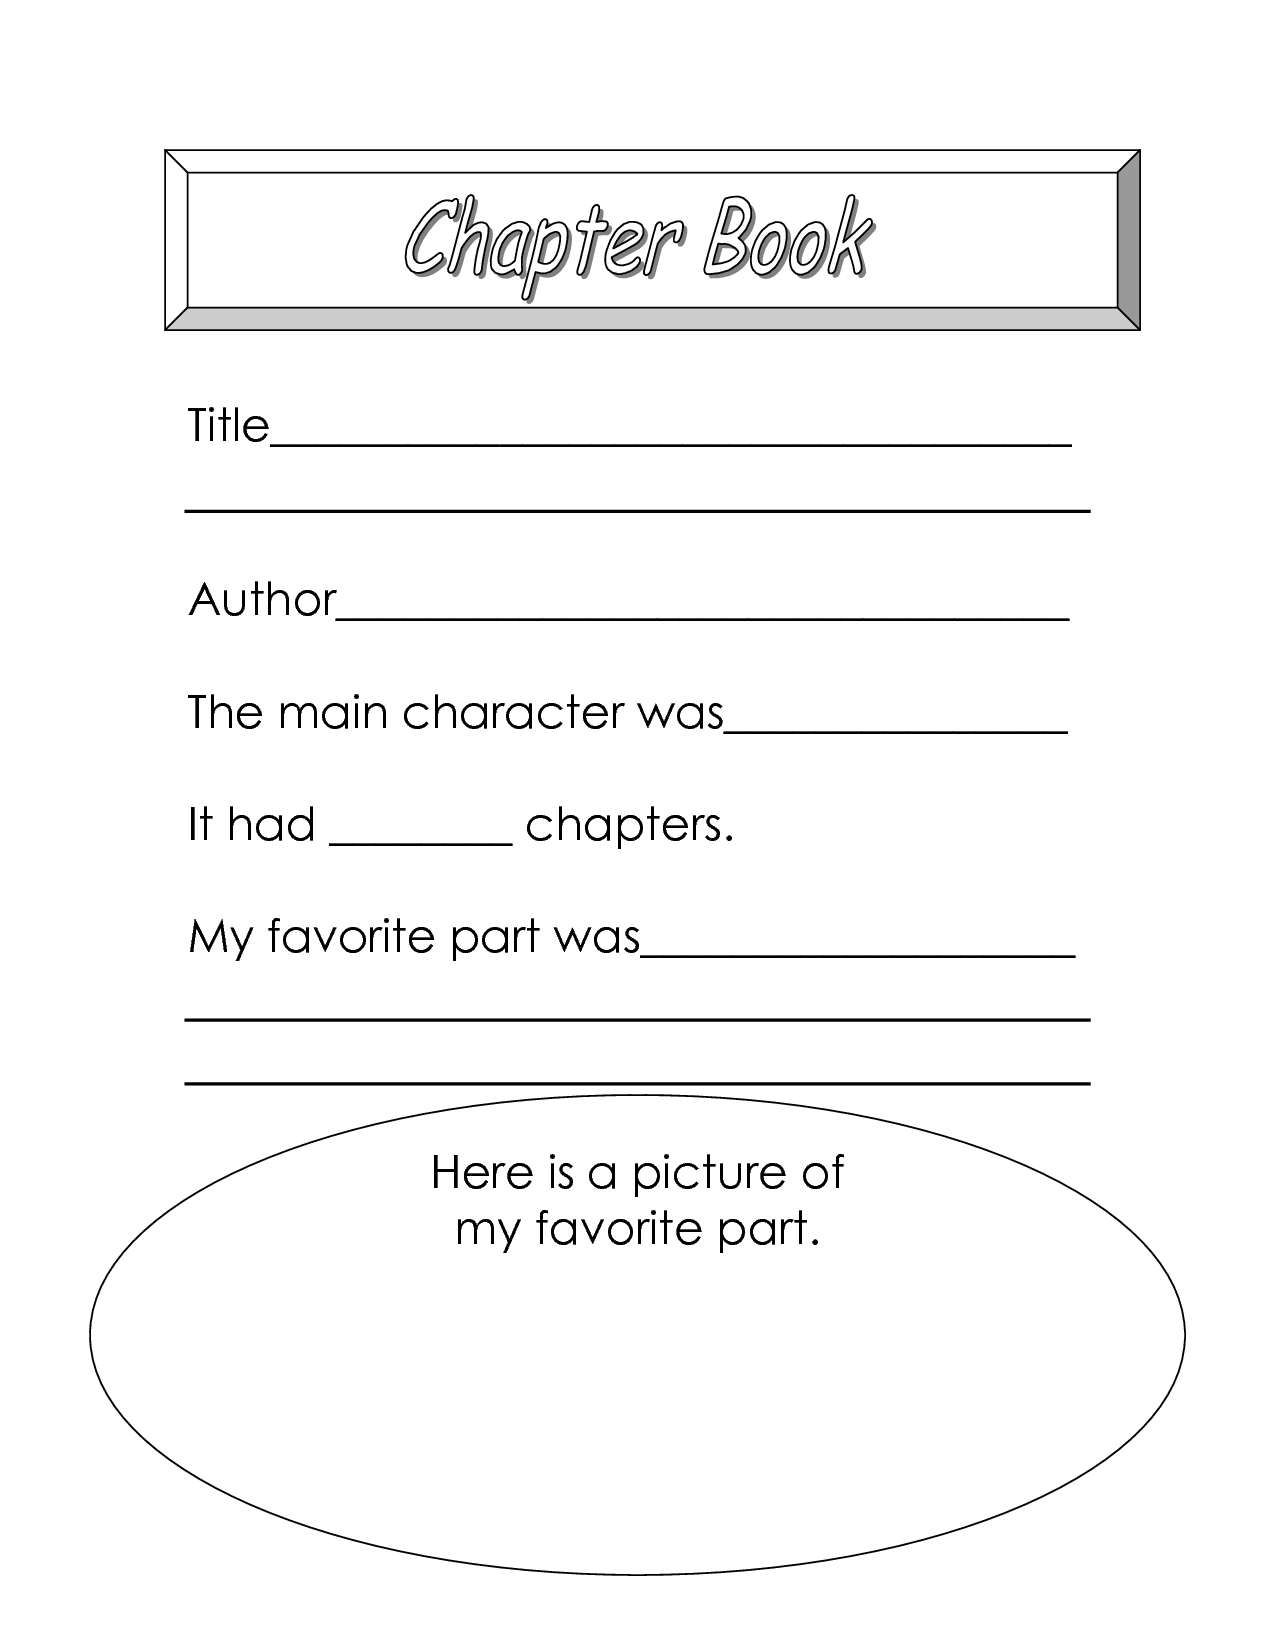 5 Best Images Of My Favorite Book Worksheet